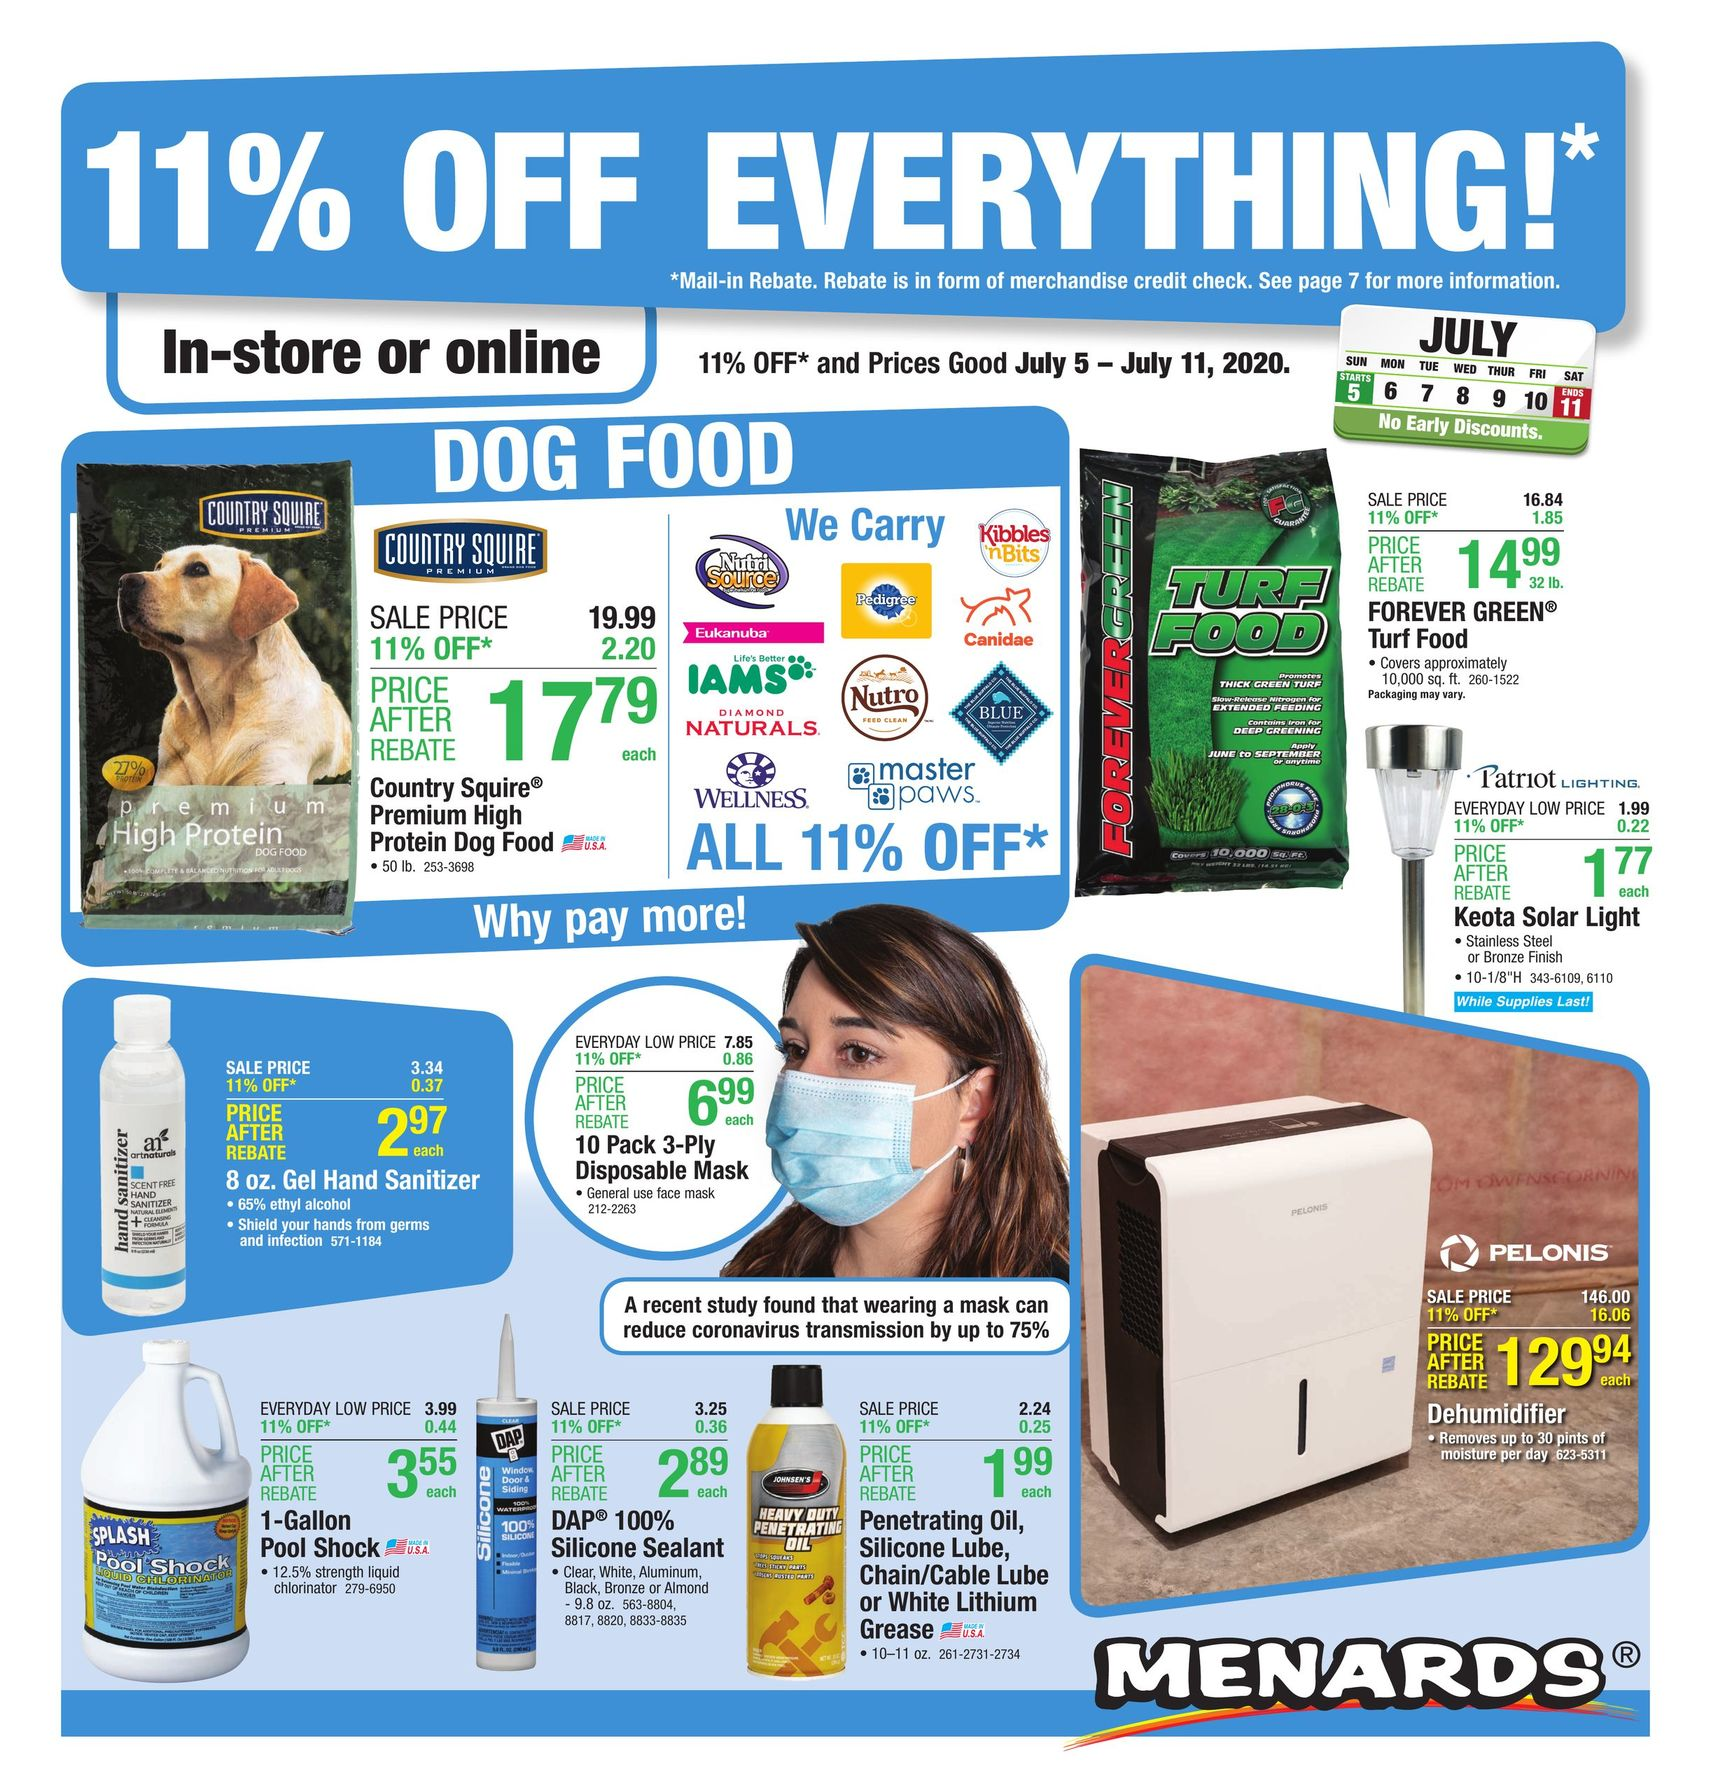 Menards Weekly Ad July 5 - July 11, 2020 11% Off Everything